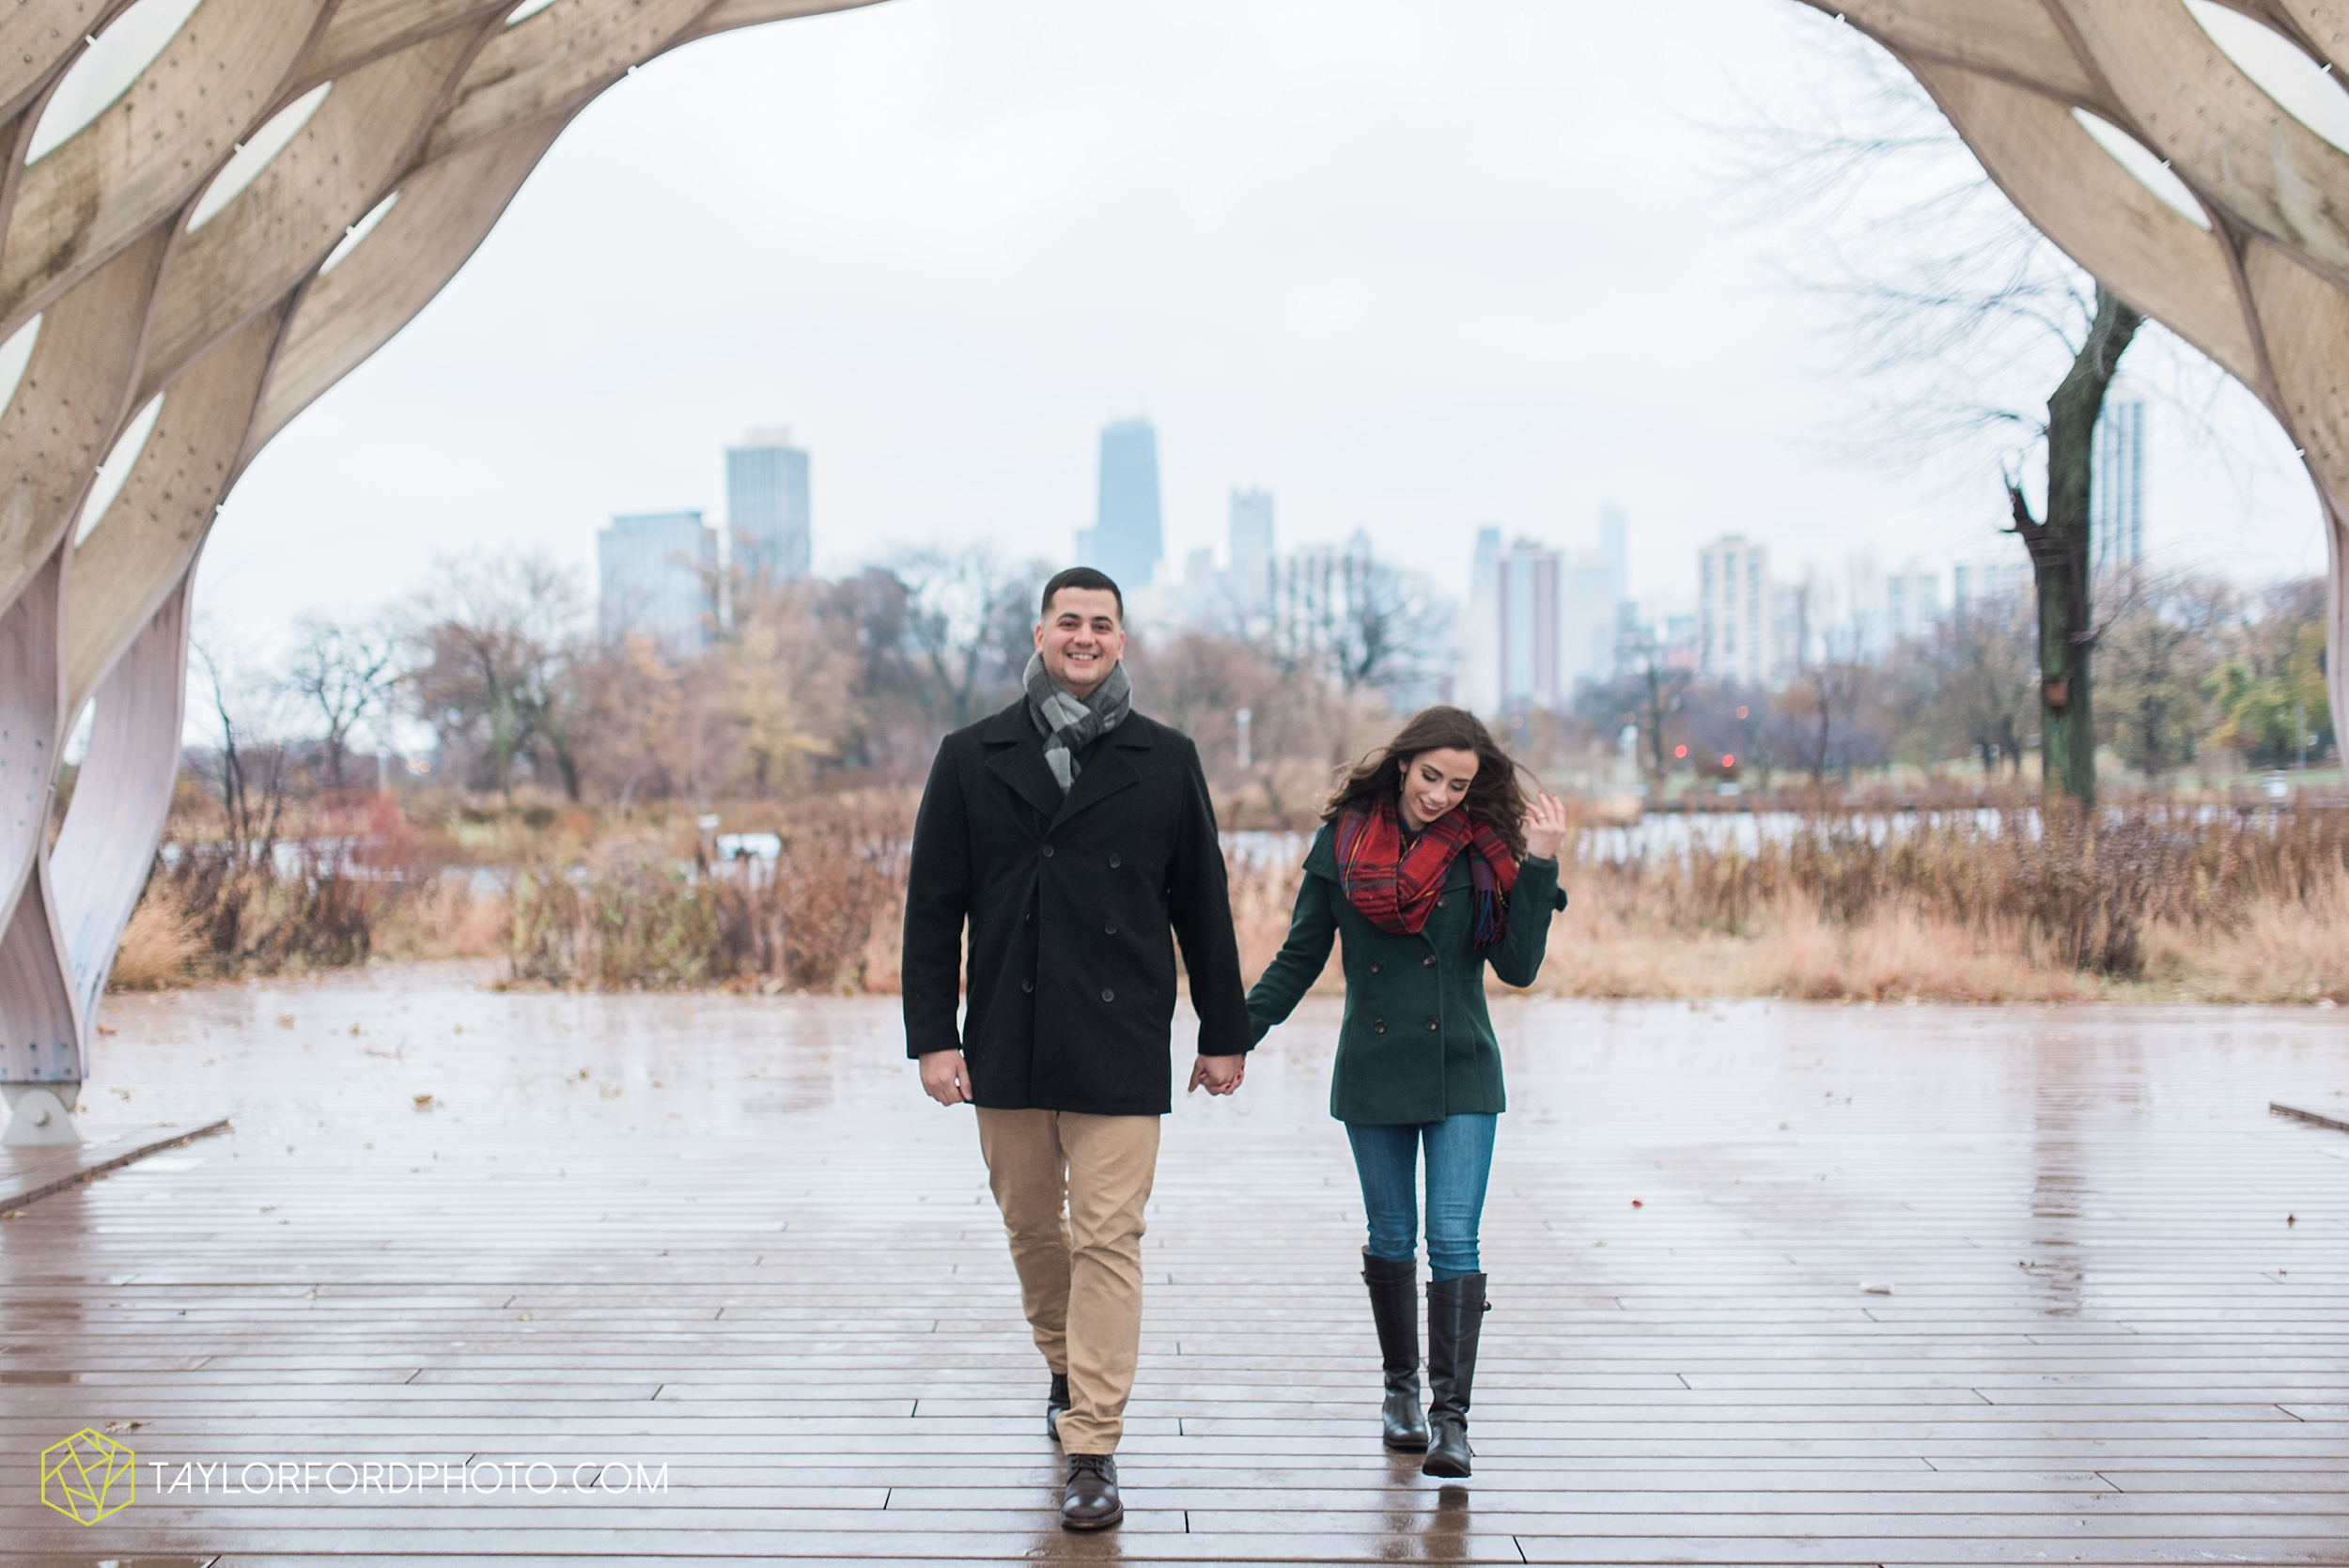 chicago-illinois-engagement-lincoln-park-zoo-downtown-millenium-park-cloud-gate-photographer-Taylor-Ford-Photography_6028.jpg